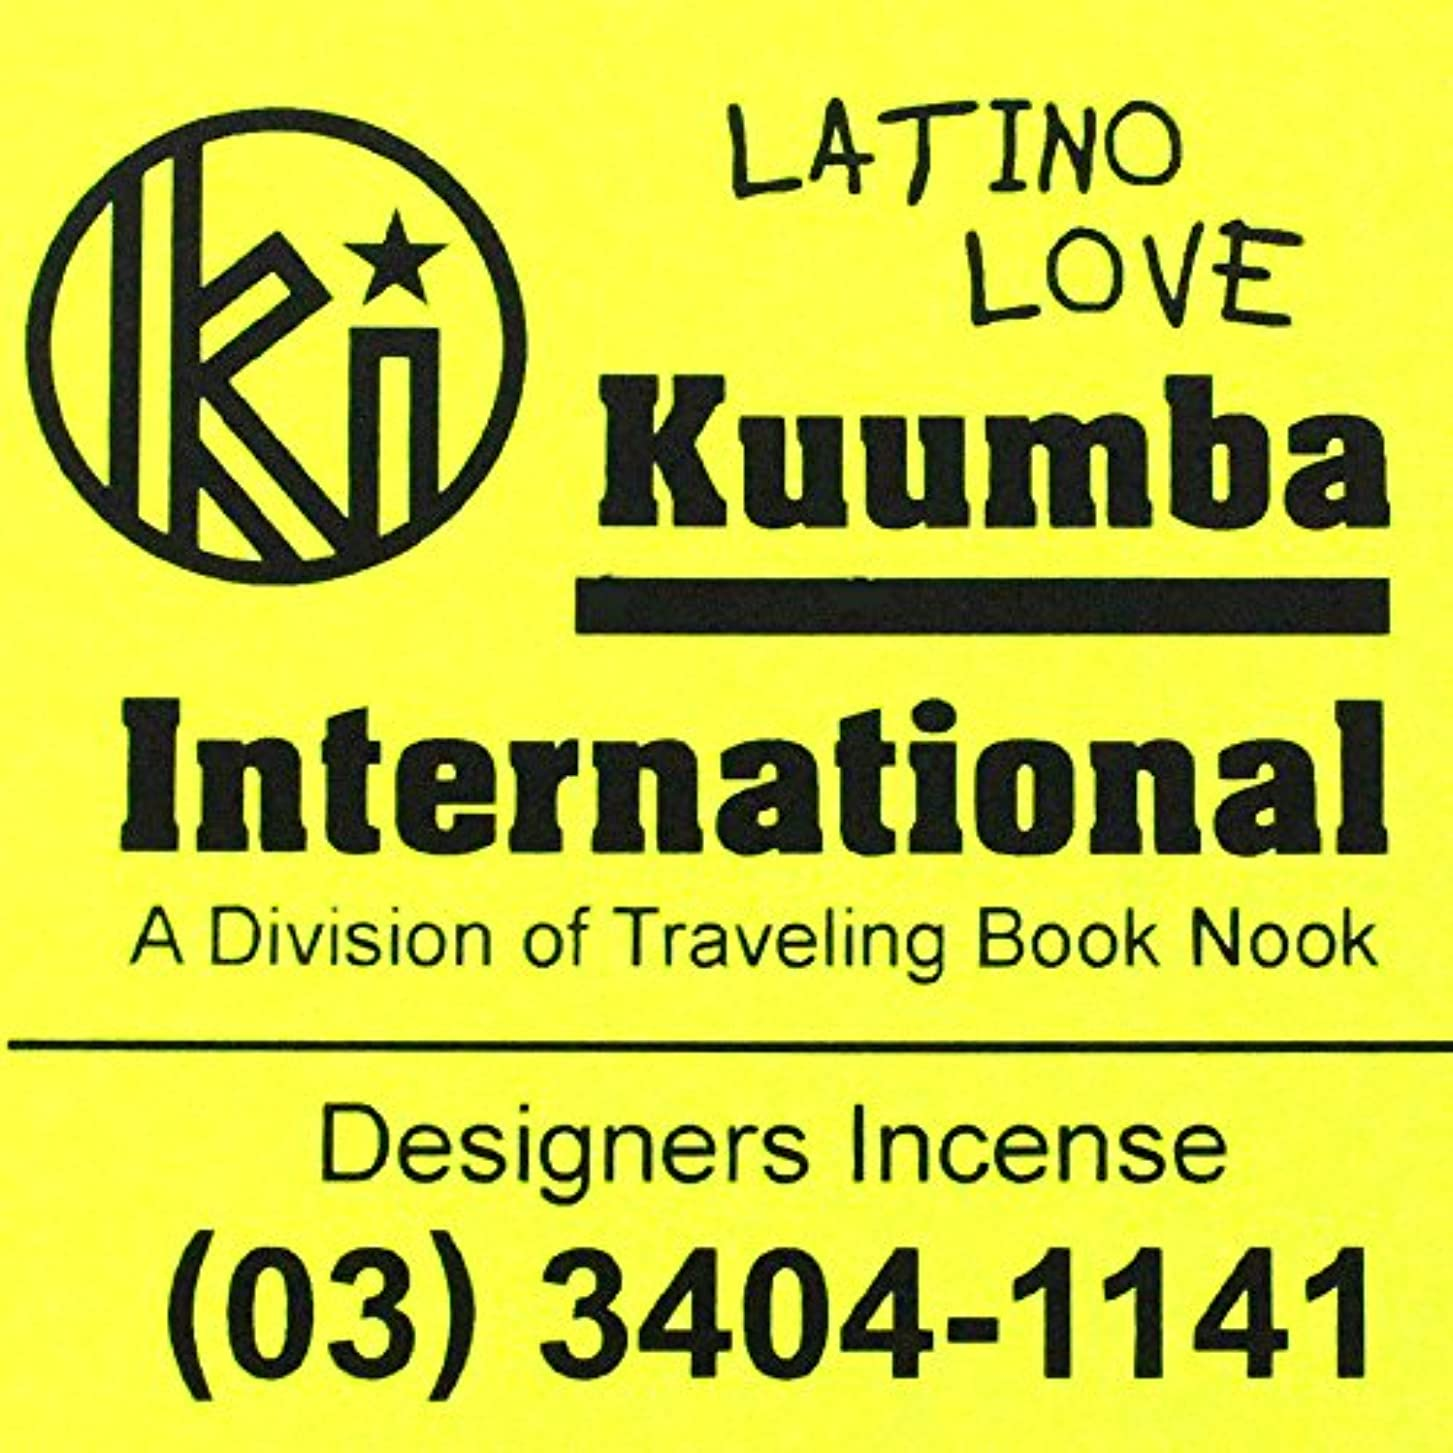 受益者裁判官歯科の(クンバ) KUUMBA『incense』(LATINO LOVE) (Regular size)